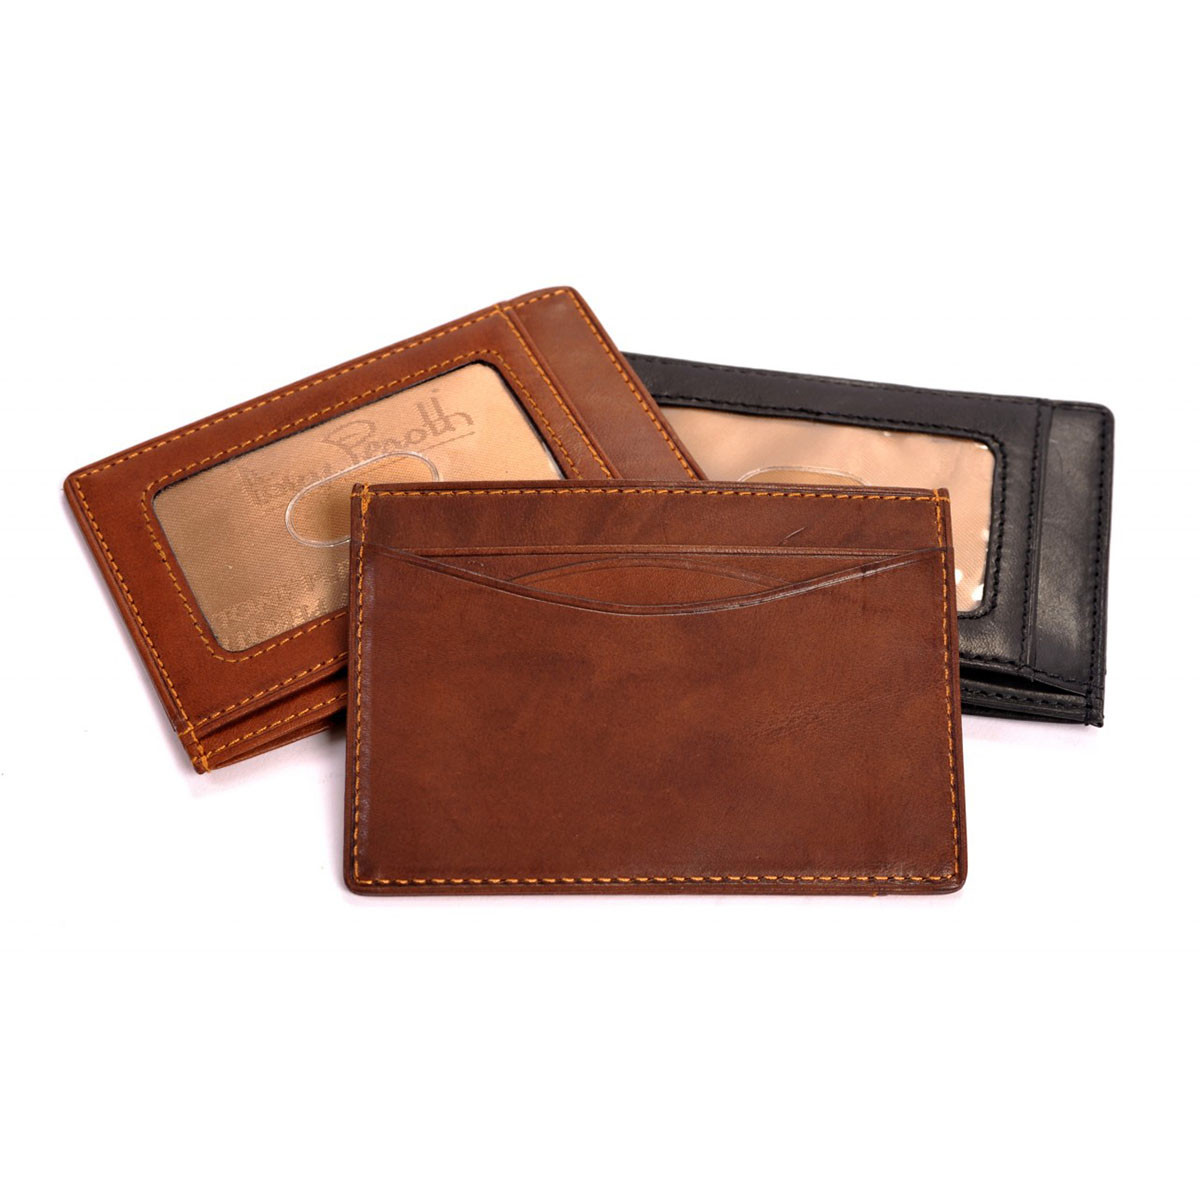 Tony Perotti Italian Leather Slim Front Pocket Bifold Weekend Wallet